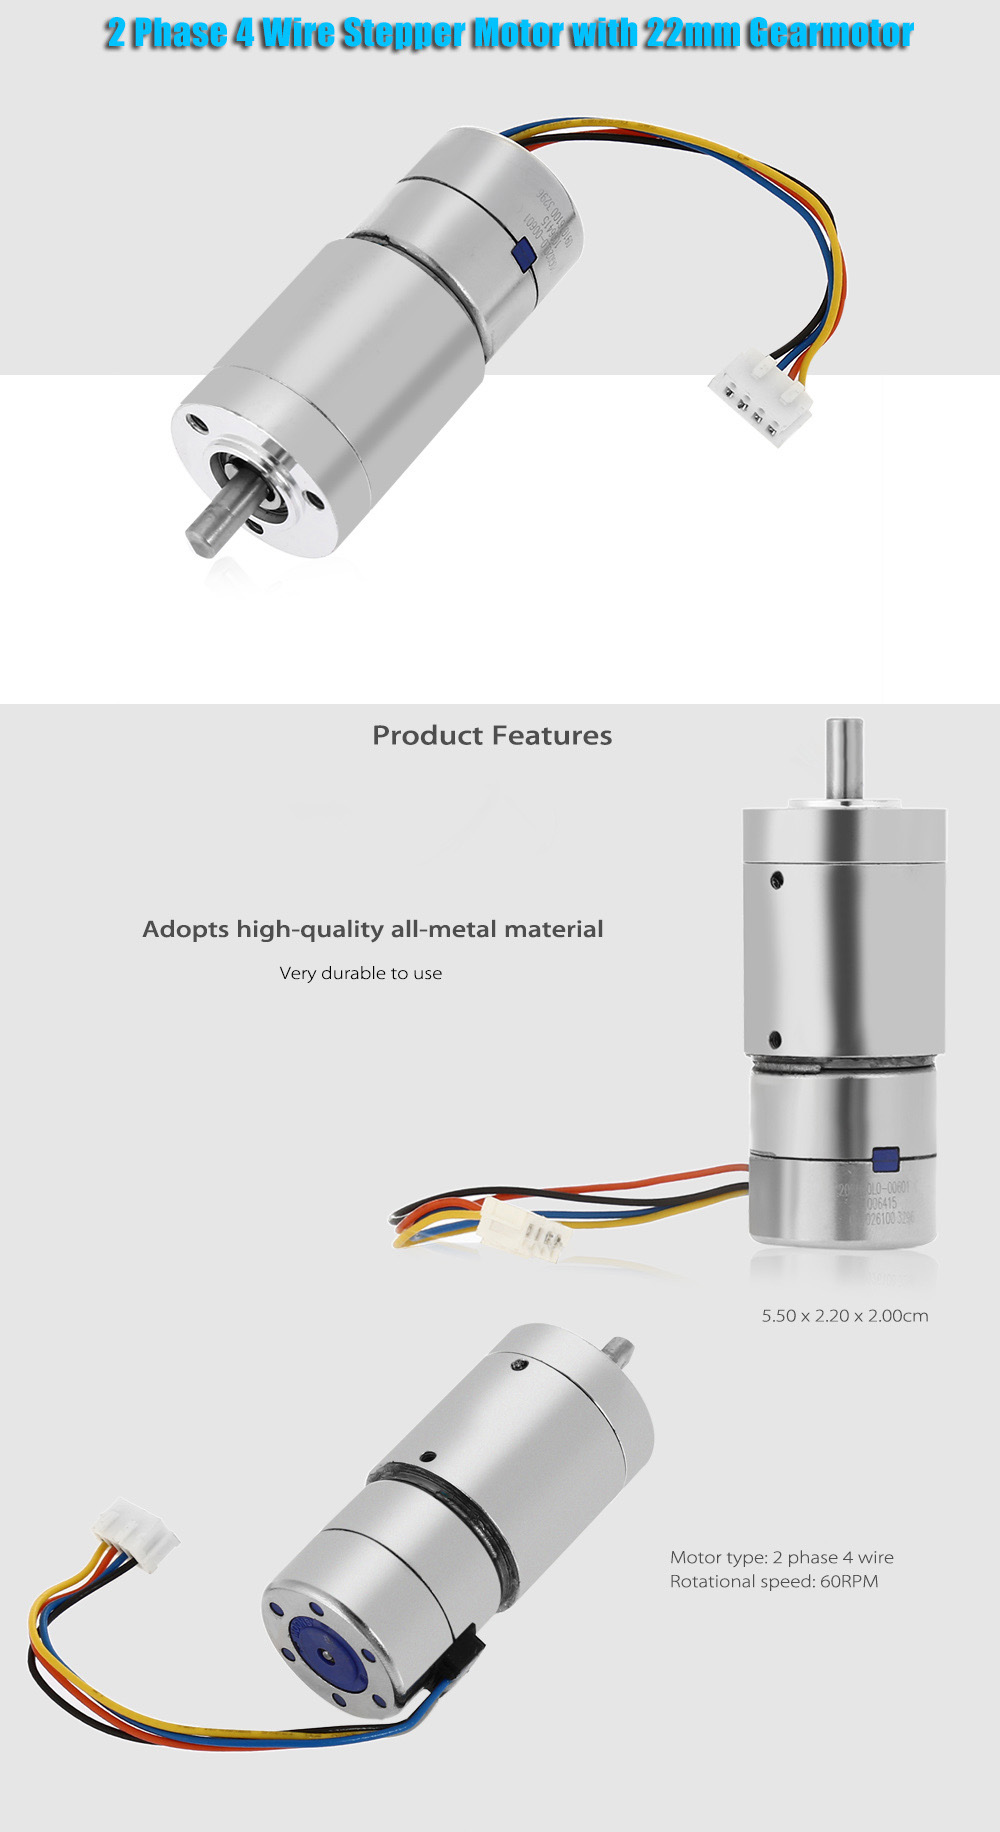 2 Phase 4 Wire Stepper Motor with 22mm All-metal Gearmotor Planetary Reducer